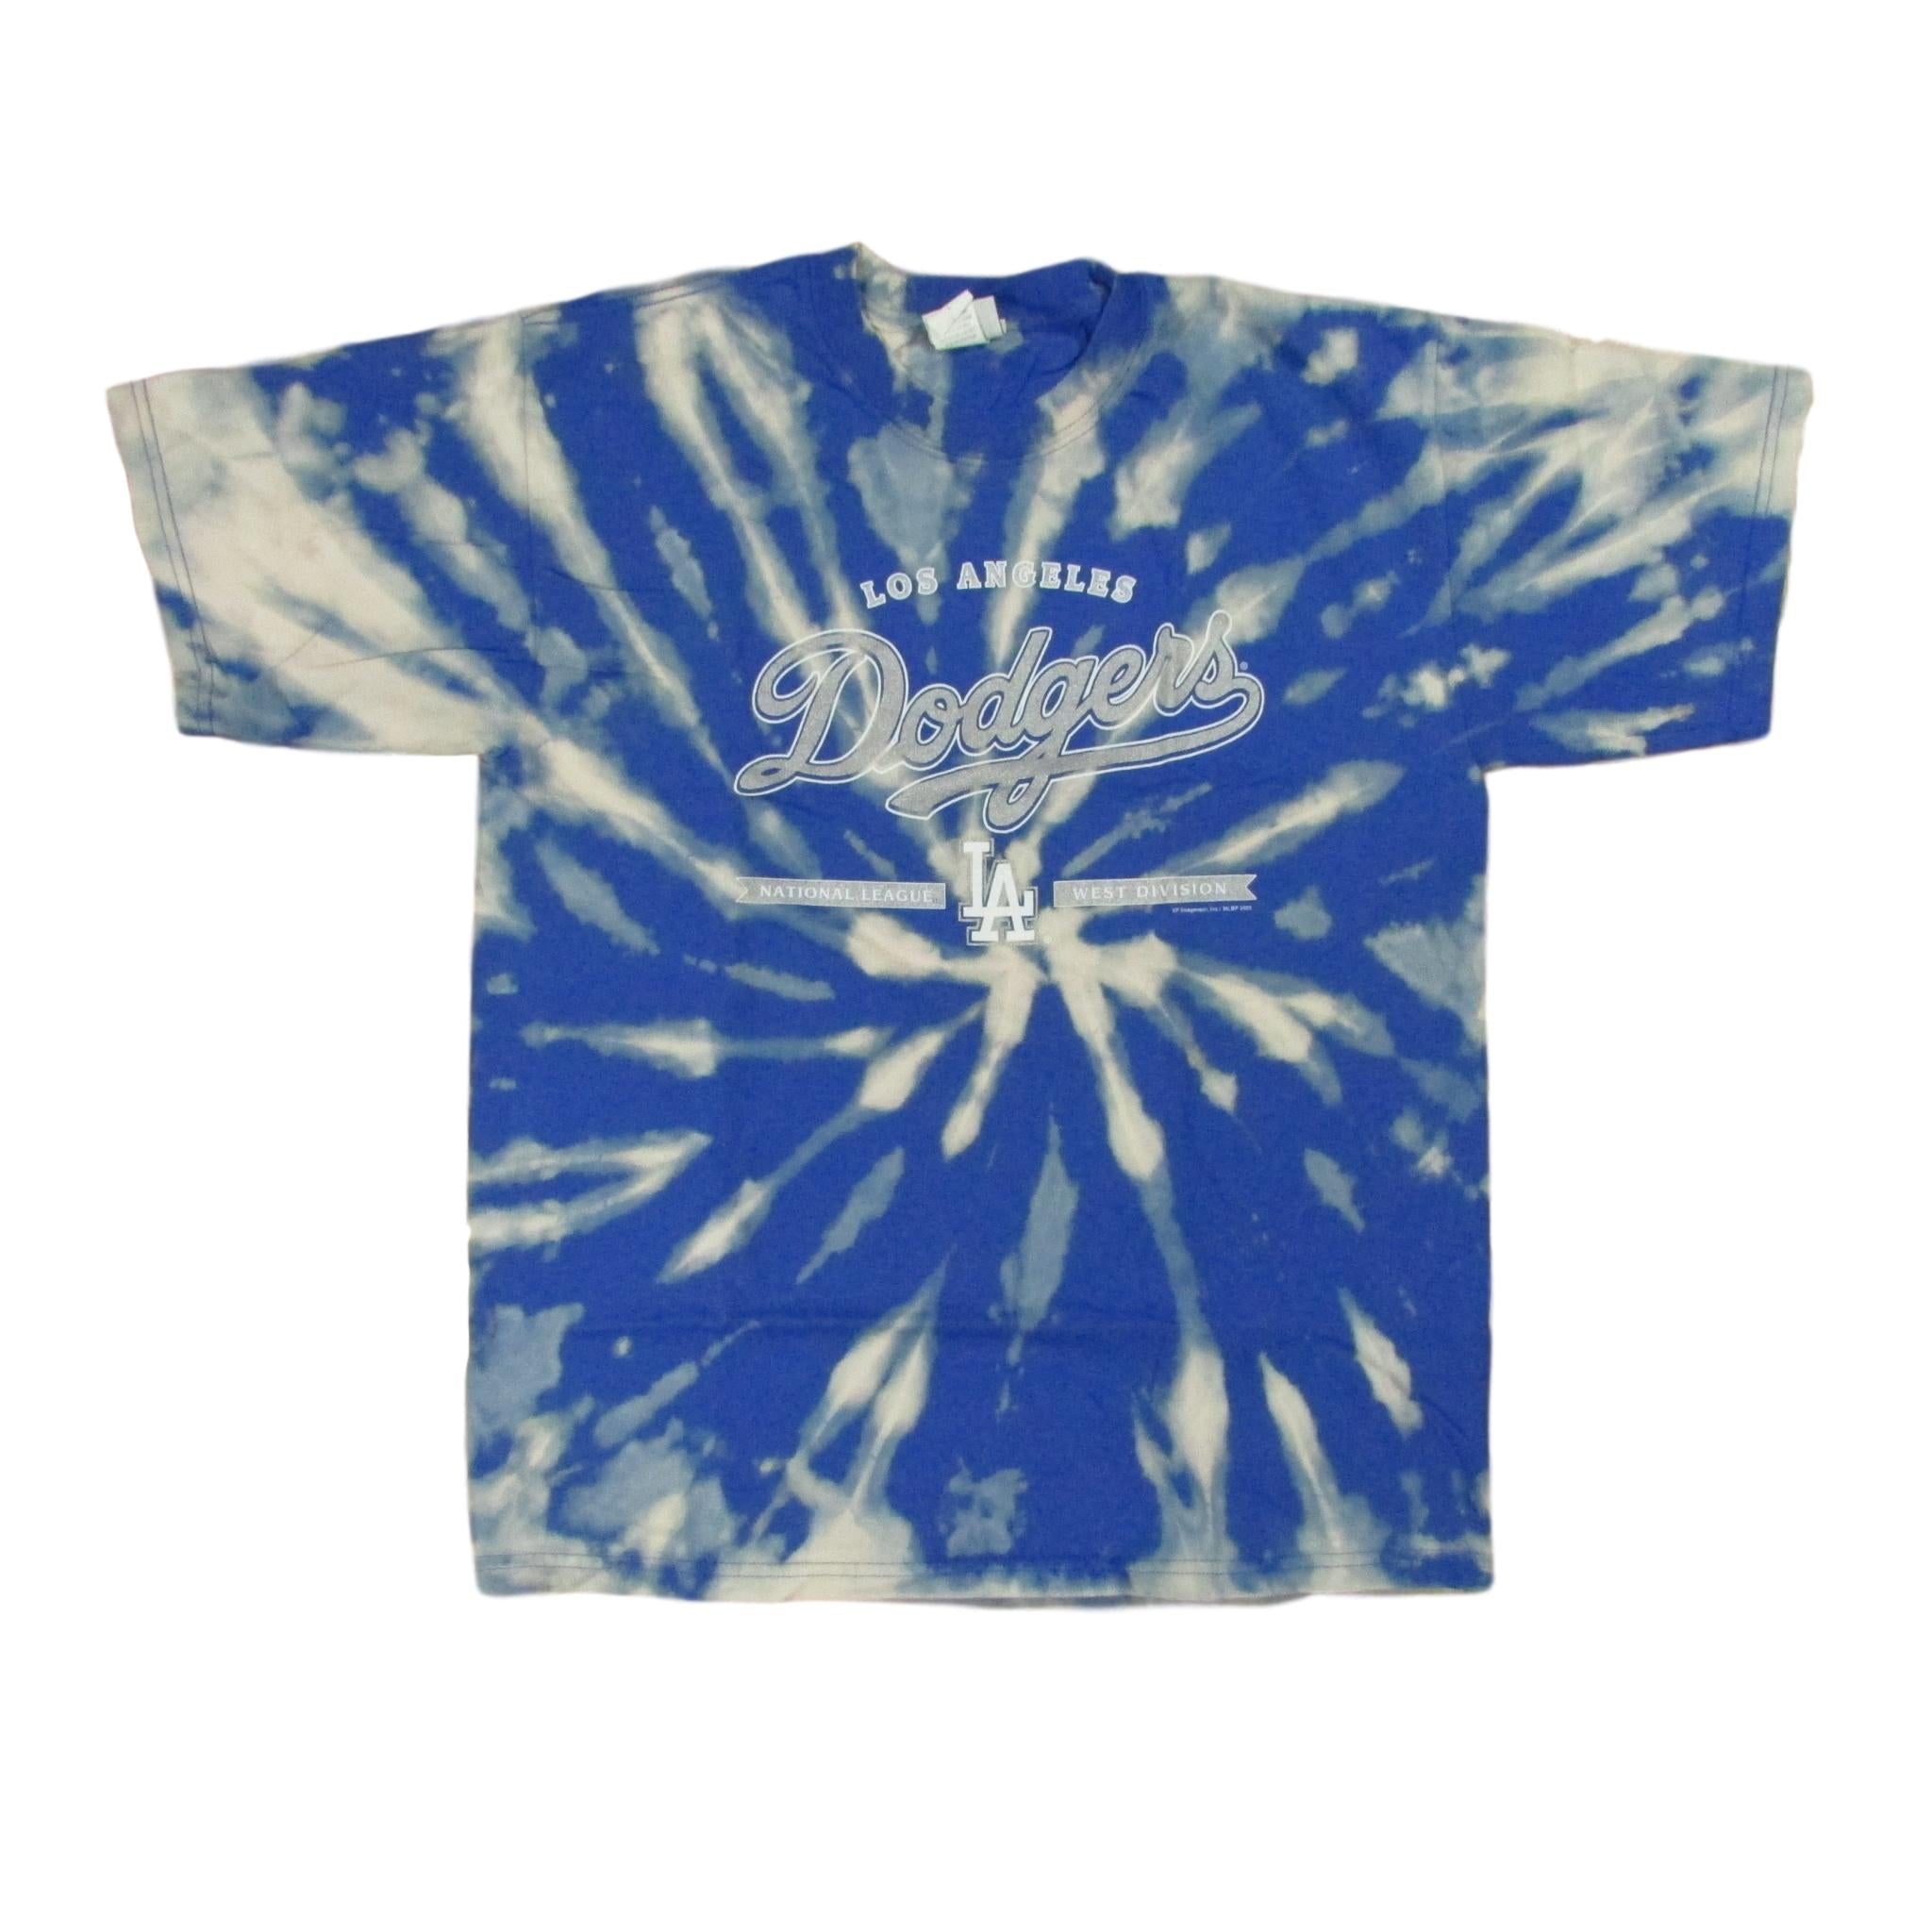 Los Angeles Dodgers Sky Bleach Tie Dye Baseball T-Shirt Lee Sports Sz L